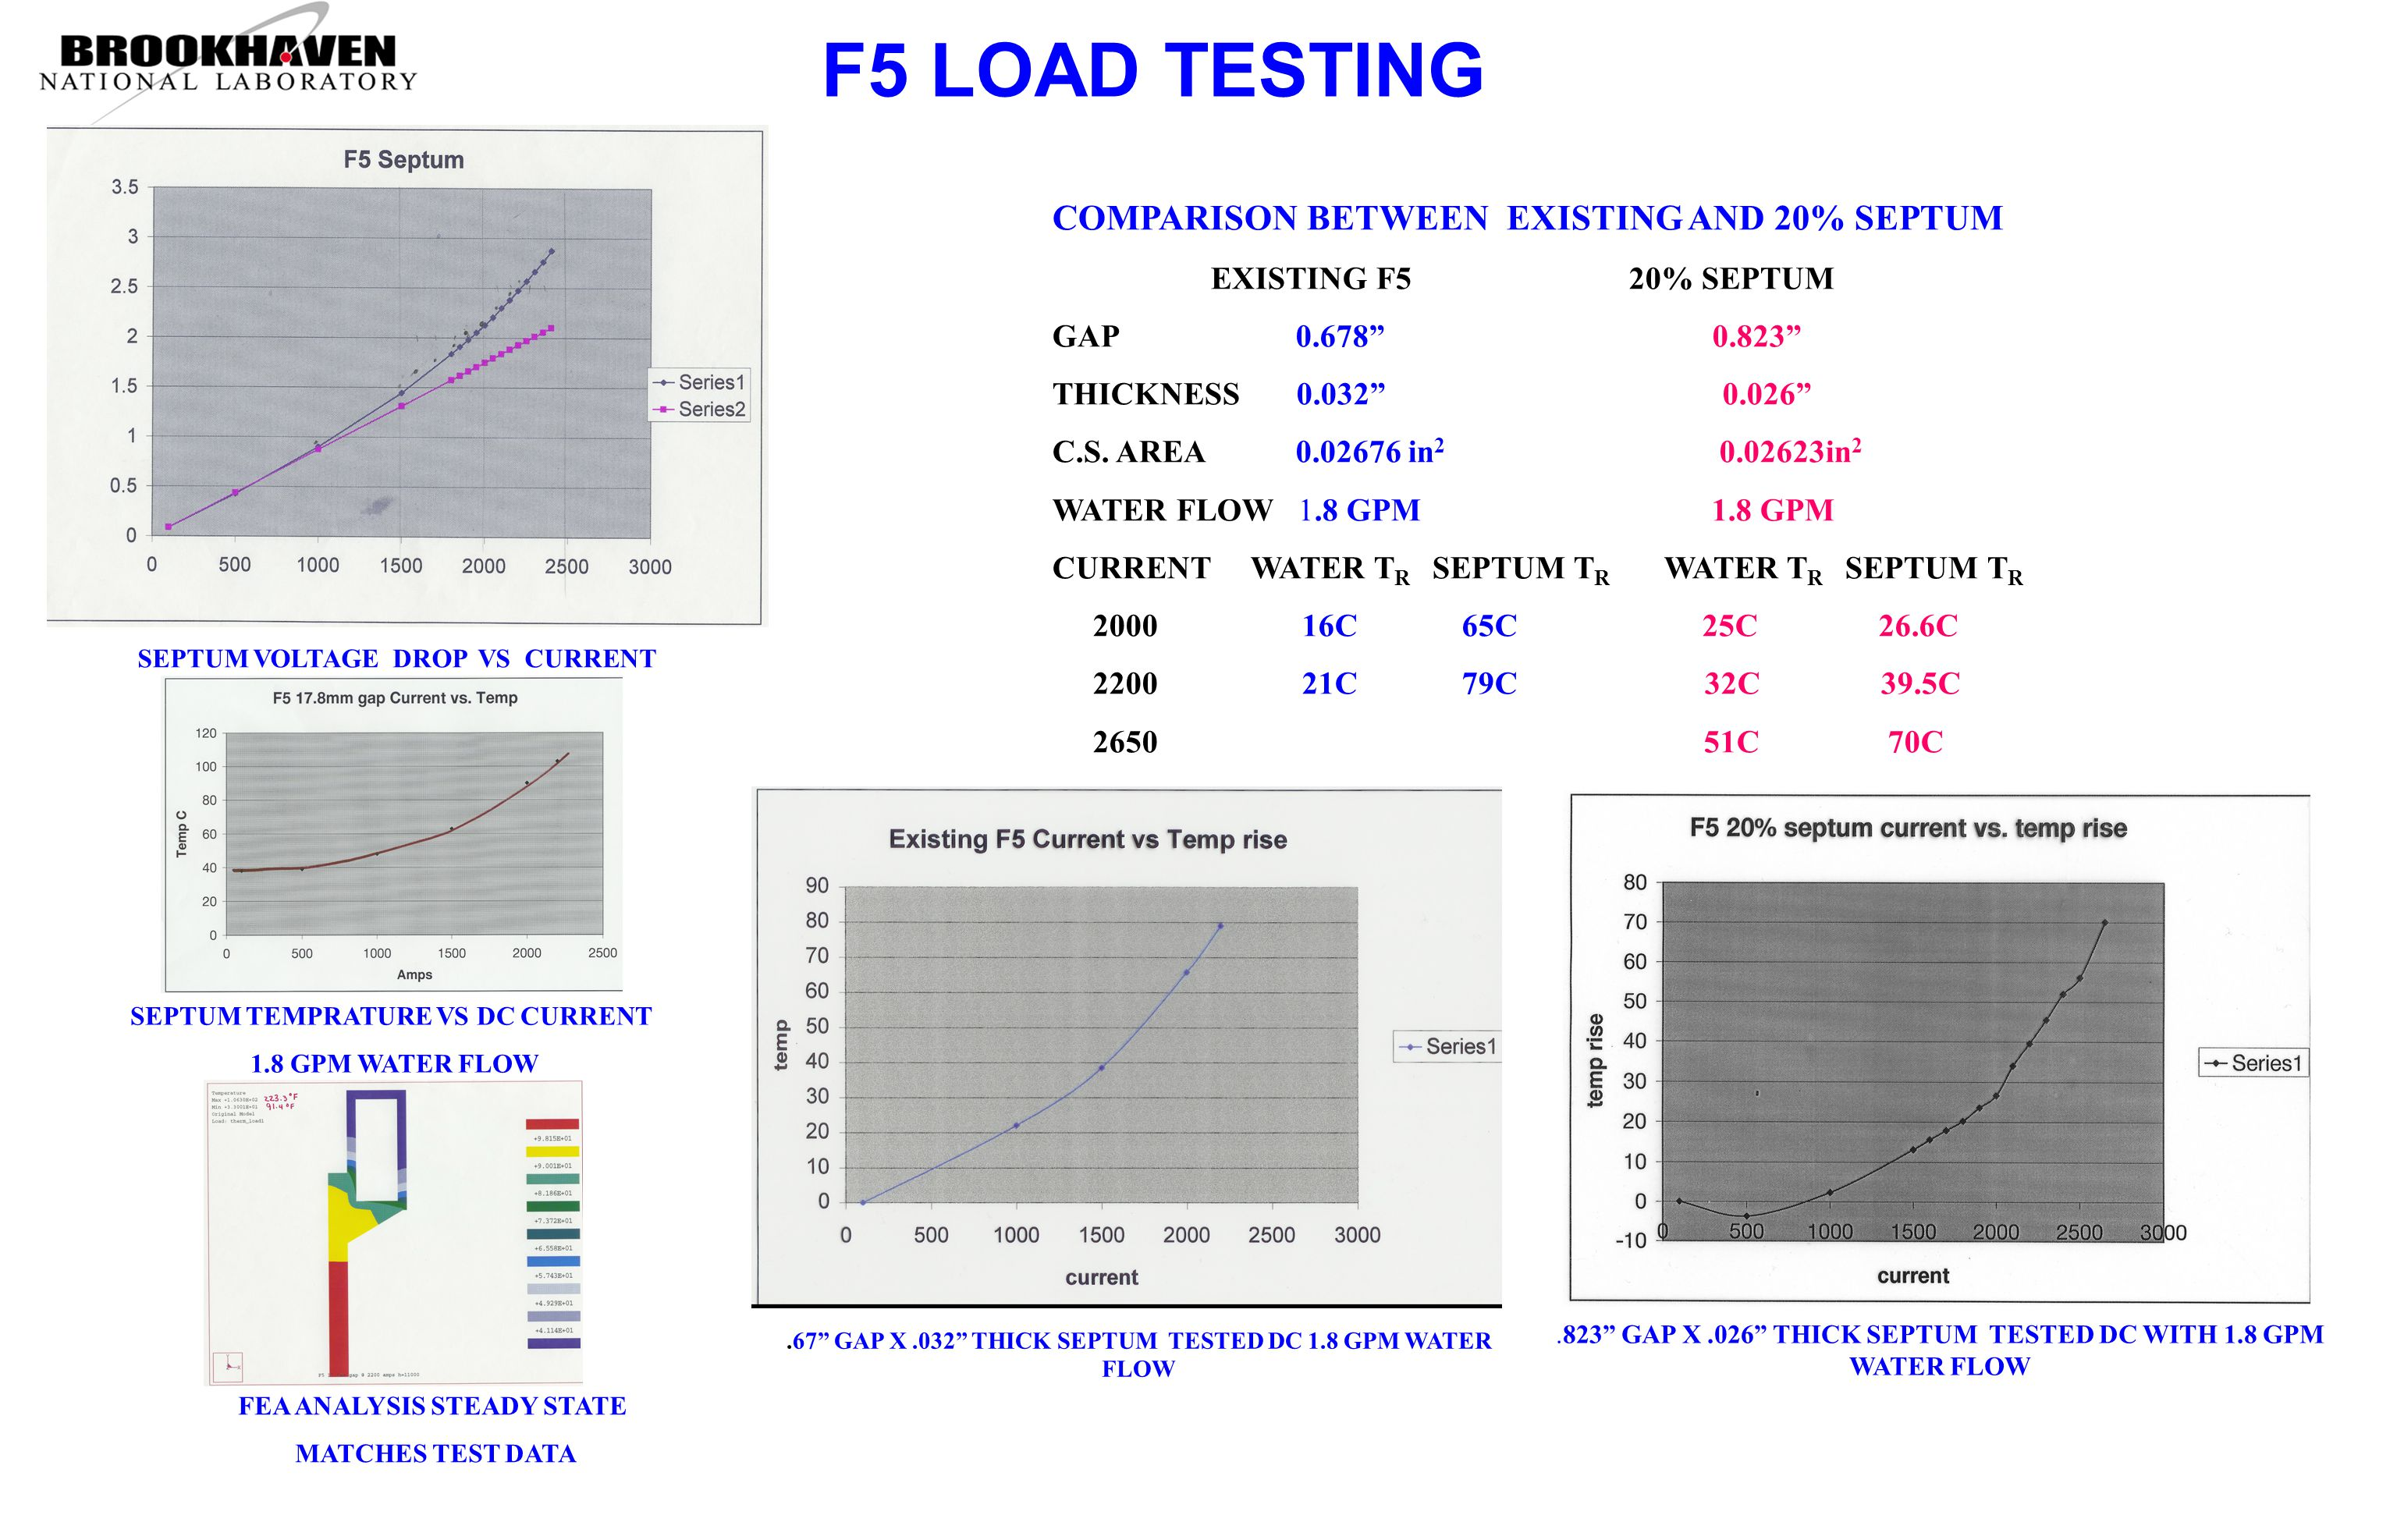 F5 LOAD TESTING.67 GAP X.032 THICK SEPTUM TESTED DC 1.8 GPM WATER FLOW.823 GAP X.026 THICK SEPTUM TESTED DC WITH 1.8 GPM WATER FLOW SEPTUM TEMPRATURE VS DC CURRENT 1.8 GPM WATER FLOW FEA ANALYSIS STEADY STATE MATCHES TEST DATA COMPARISON BETWEEN EXISTING AND 20% SEPTUM EXISTING F5 20% SEPTUM GAP 0.678 0.823 THICKNESS 0.032 0.026 C.S.